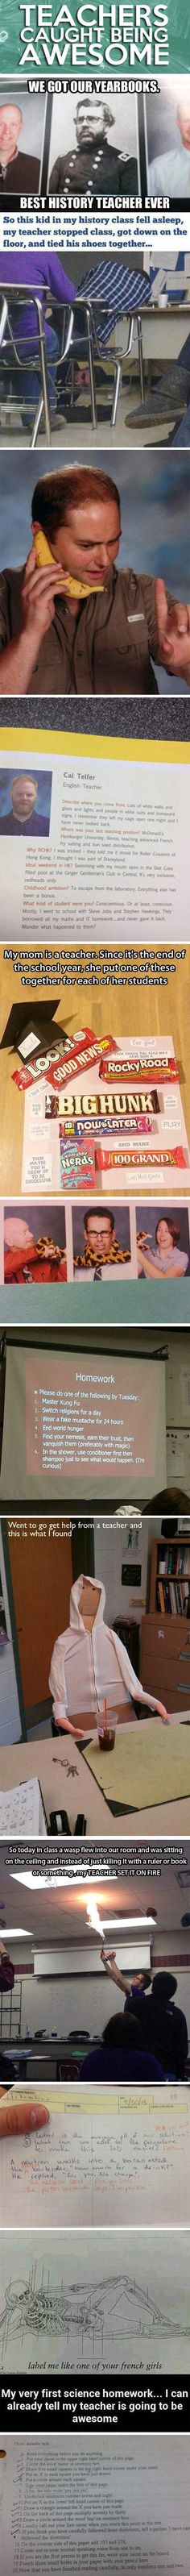 Teachers caught being awesome...